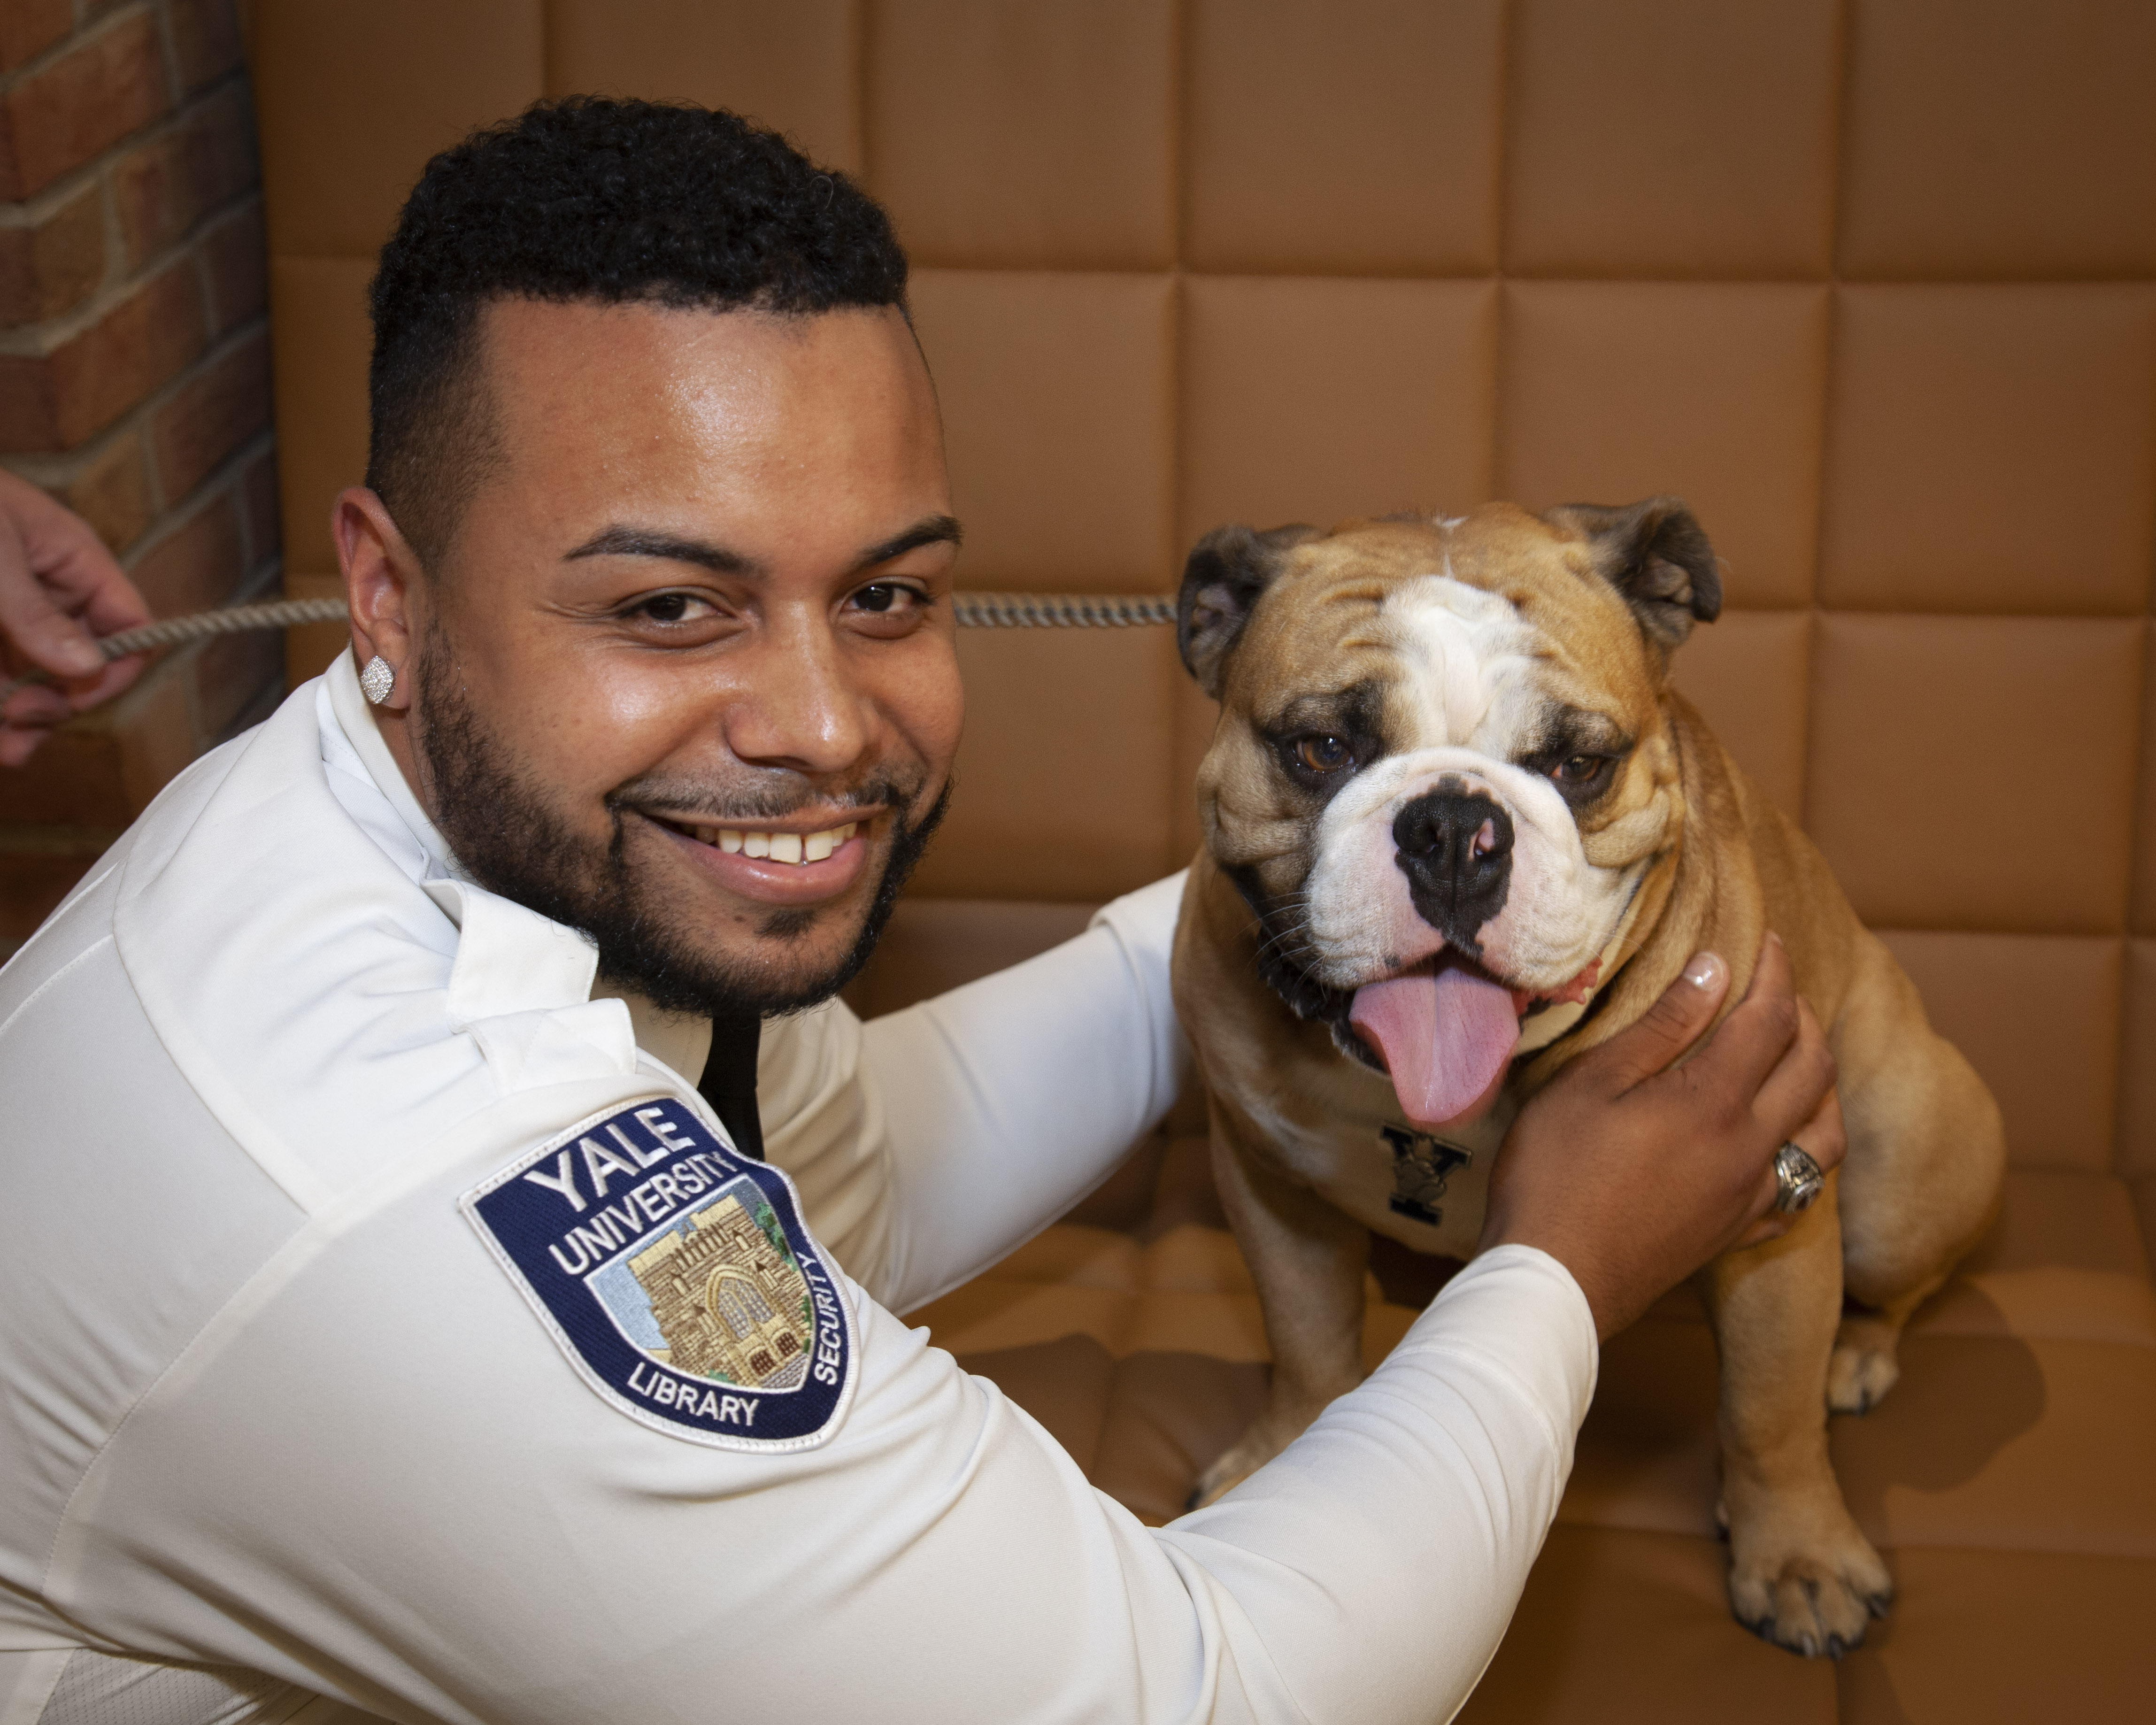 Library security officer Kenny White with Handsome Dan